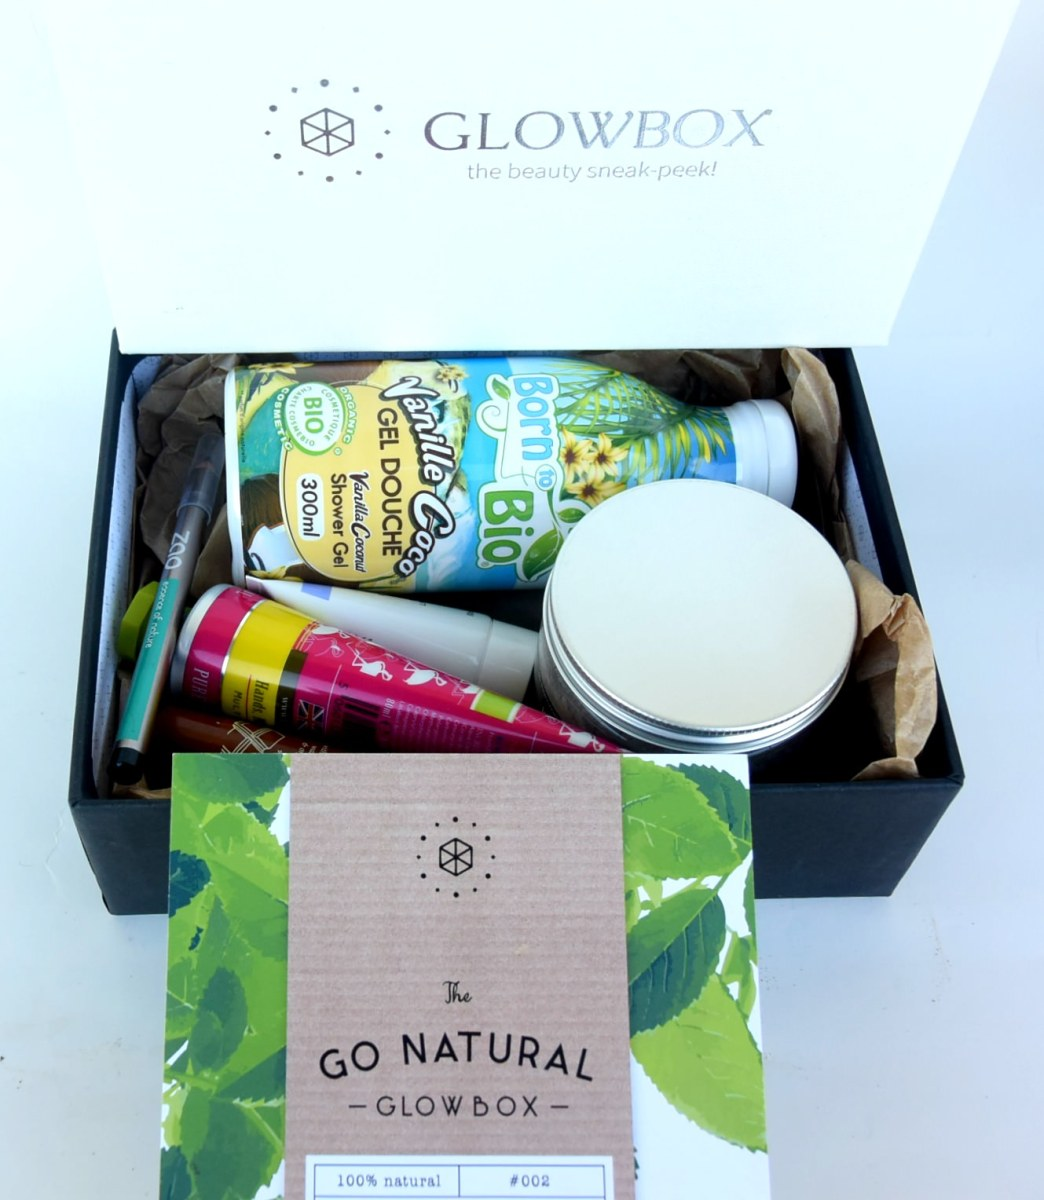 Glowbox #GoNatural Box - Unboxing and first impressions